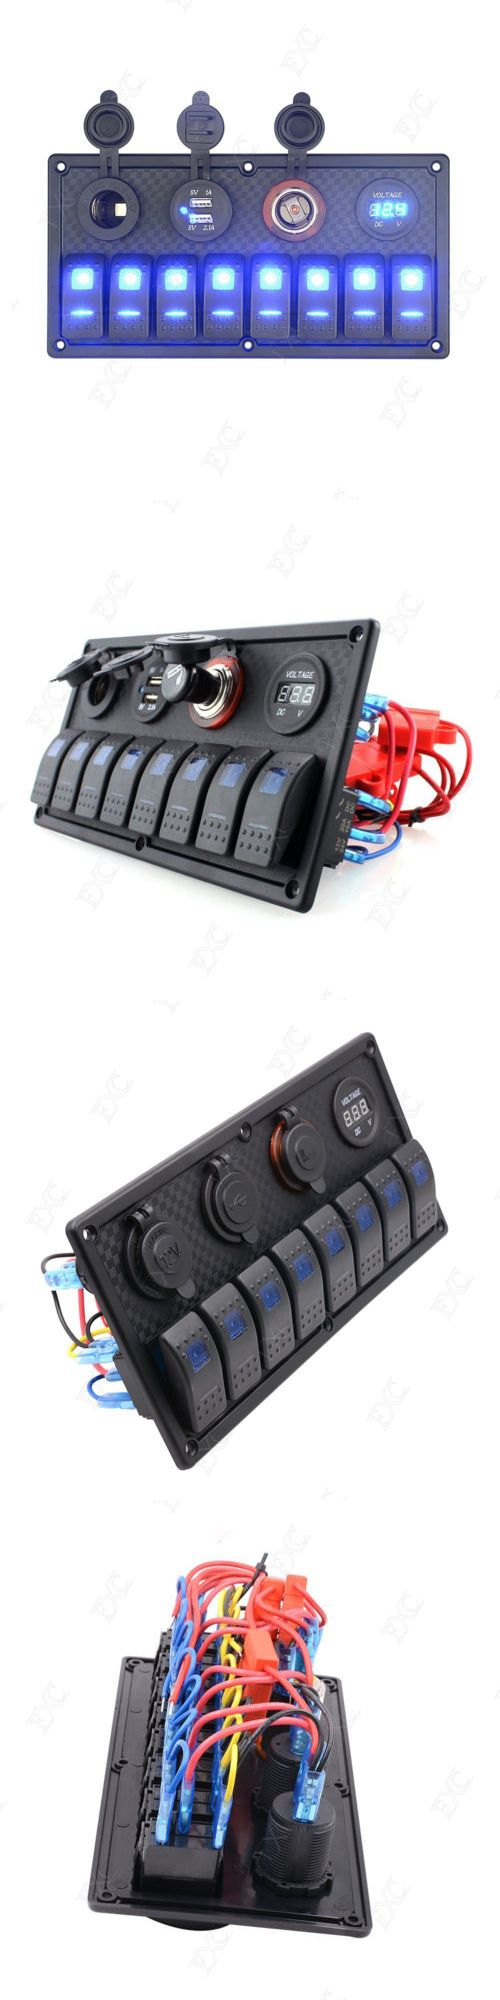 boat parts: Purishion 8 Gang Rocker Switch Panel Voltmeter Double Usb For Rv Car Marine Boat -> BUY IT NOW ONLY: $55.61 on eBay!